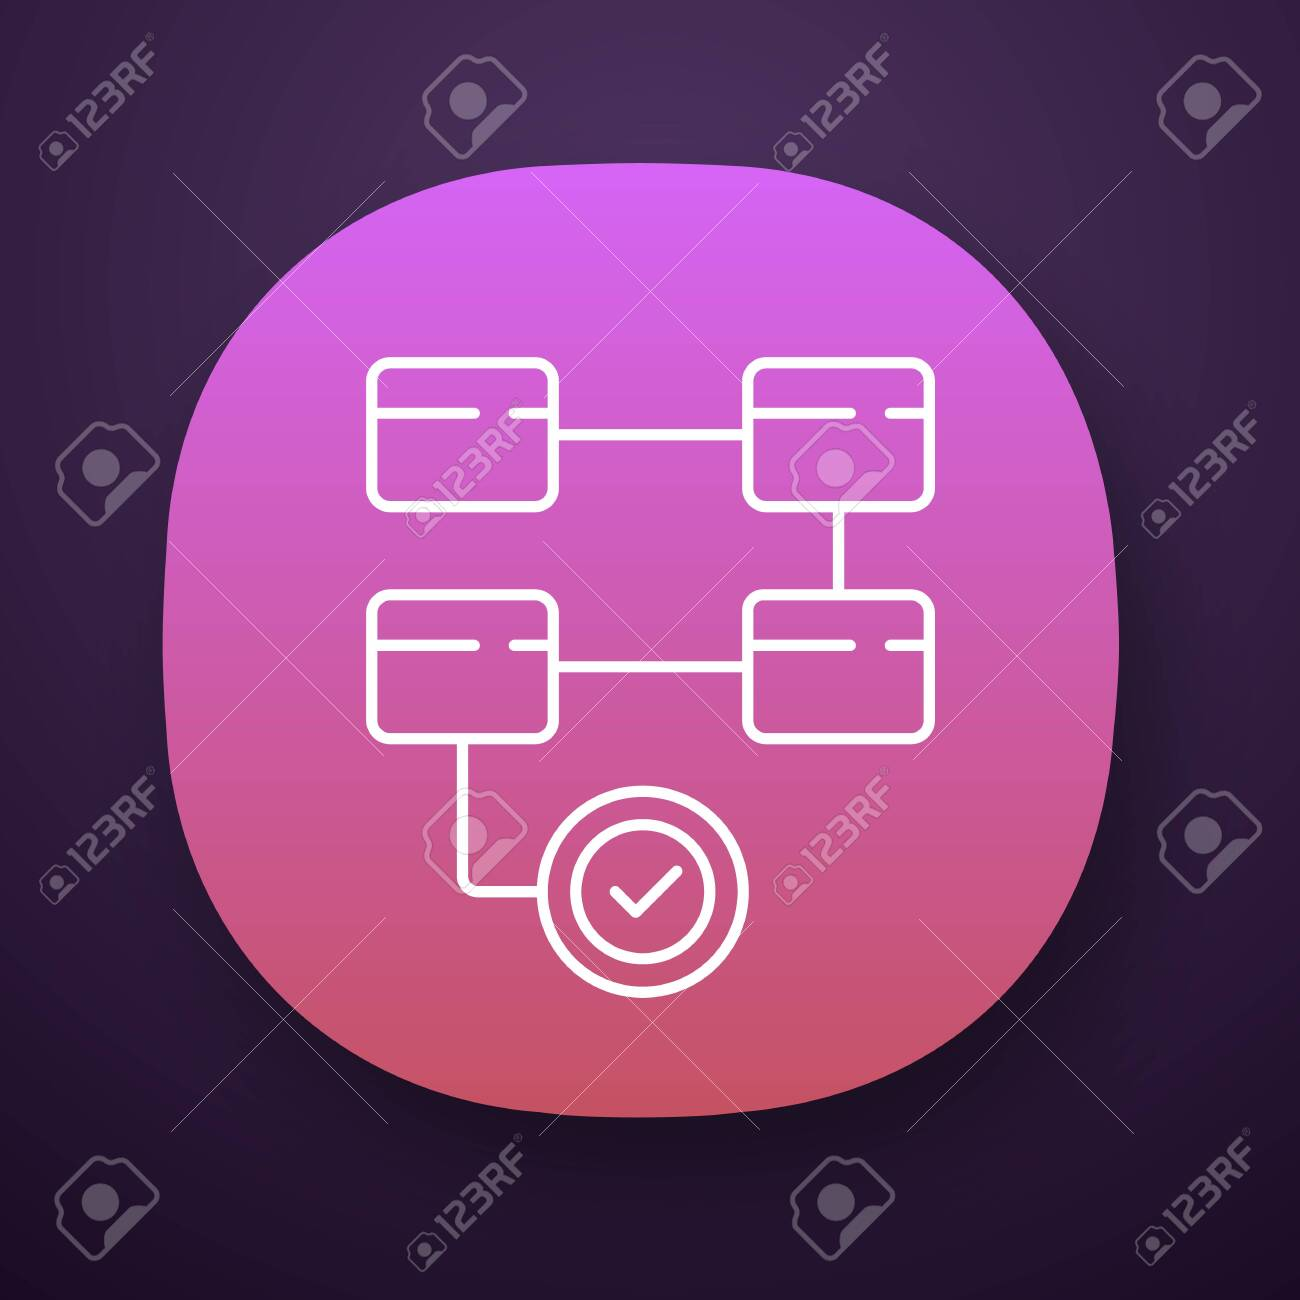 Activity Diagram App Icon Workflow Actions Process Map Deployment Royalty Free Cliparts Vectors And Stock Illustration Image 128370483